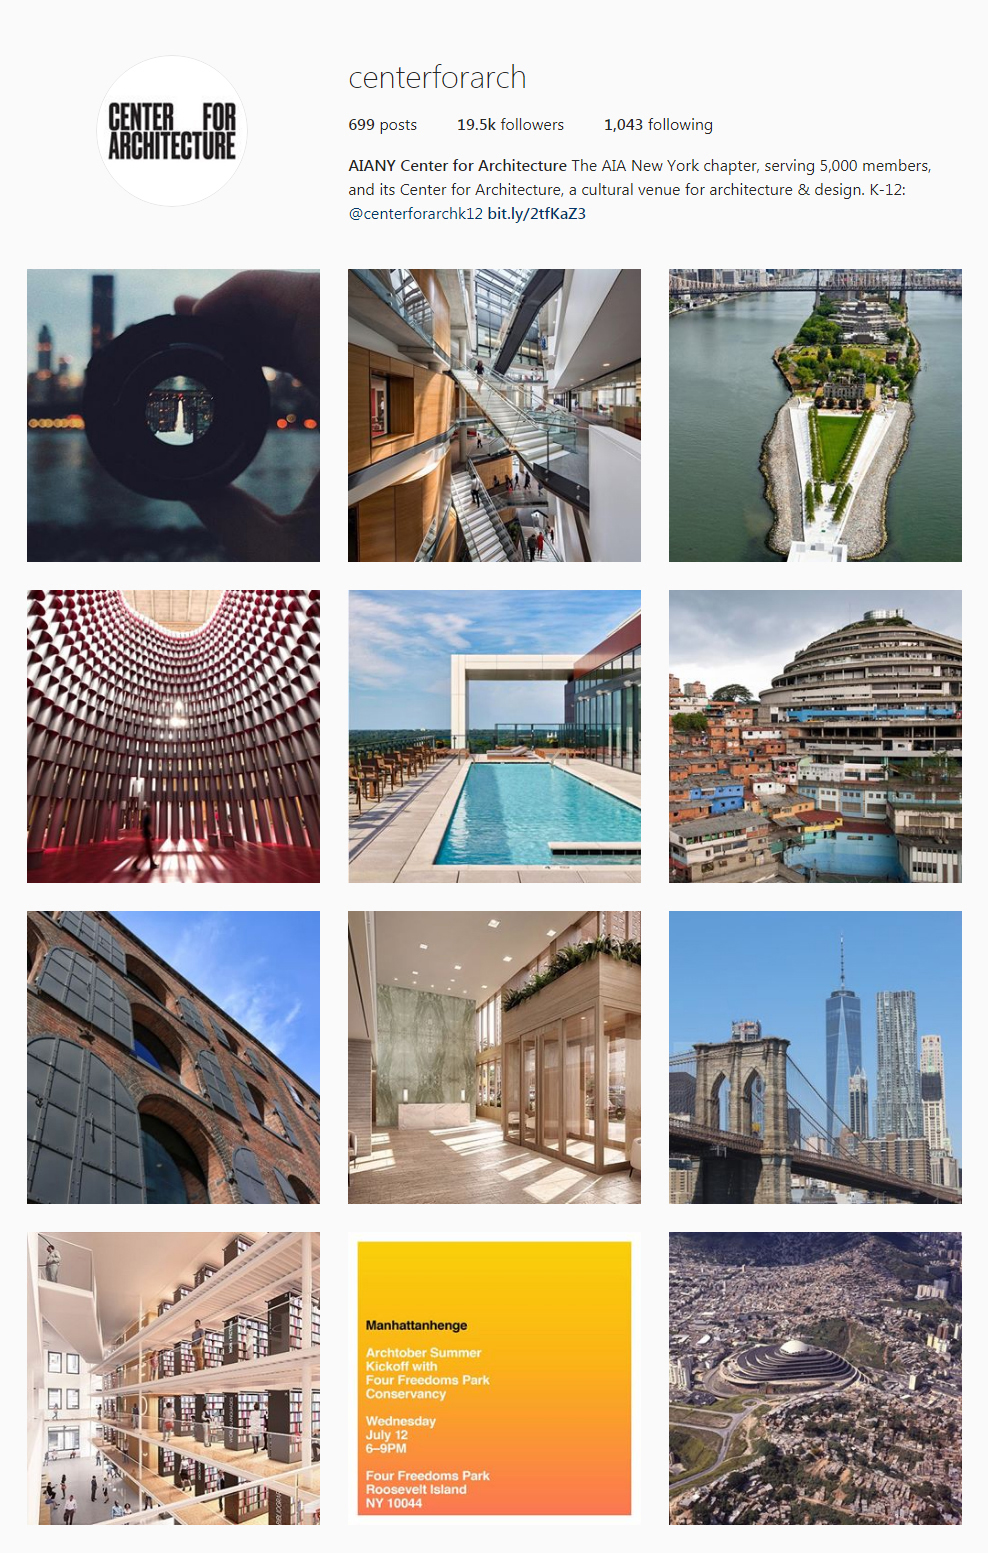 Best Architectural Instagram Feeds of 2017 - AIANY Center for Architecture